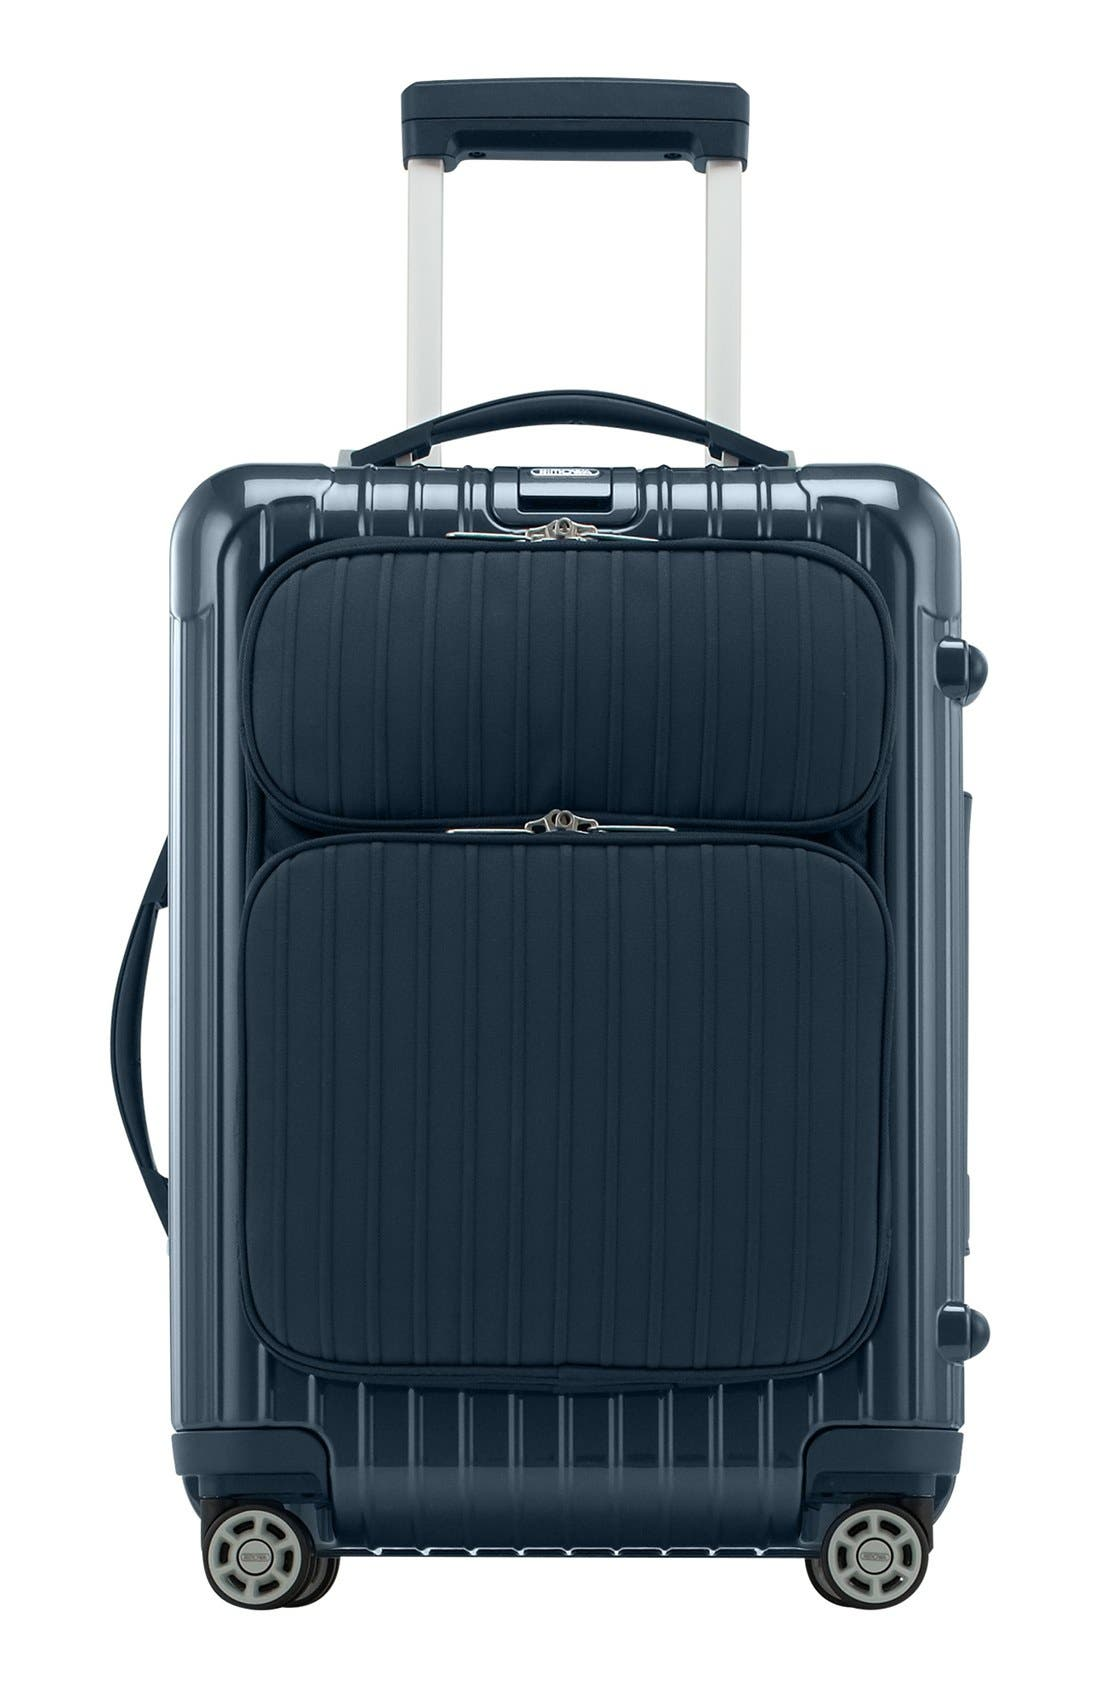 RIMOWA Salsa Deluxe Hybrid 22-Inch Multiwheel® Carry-On